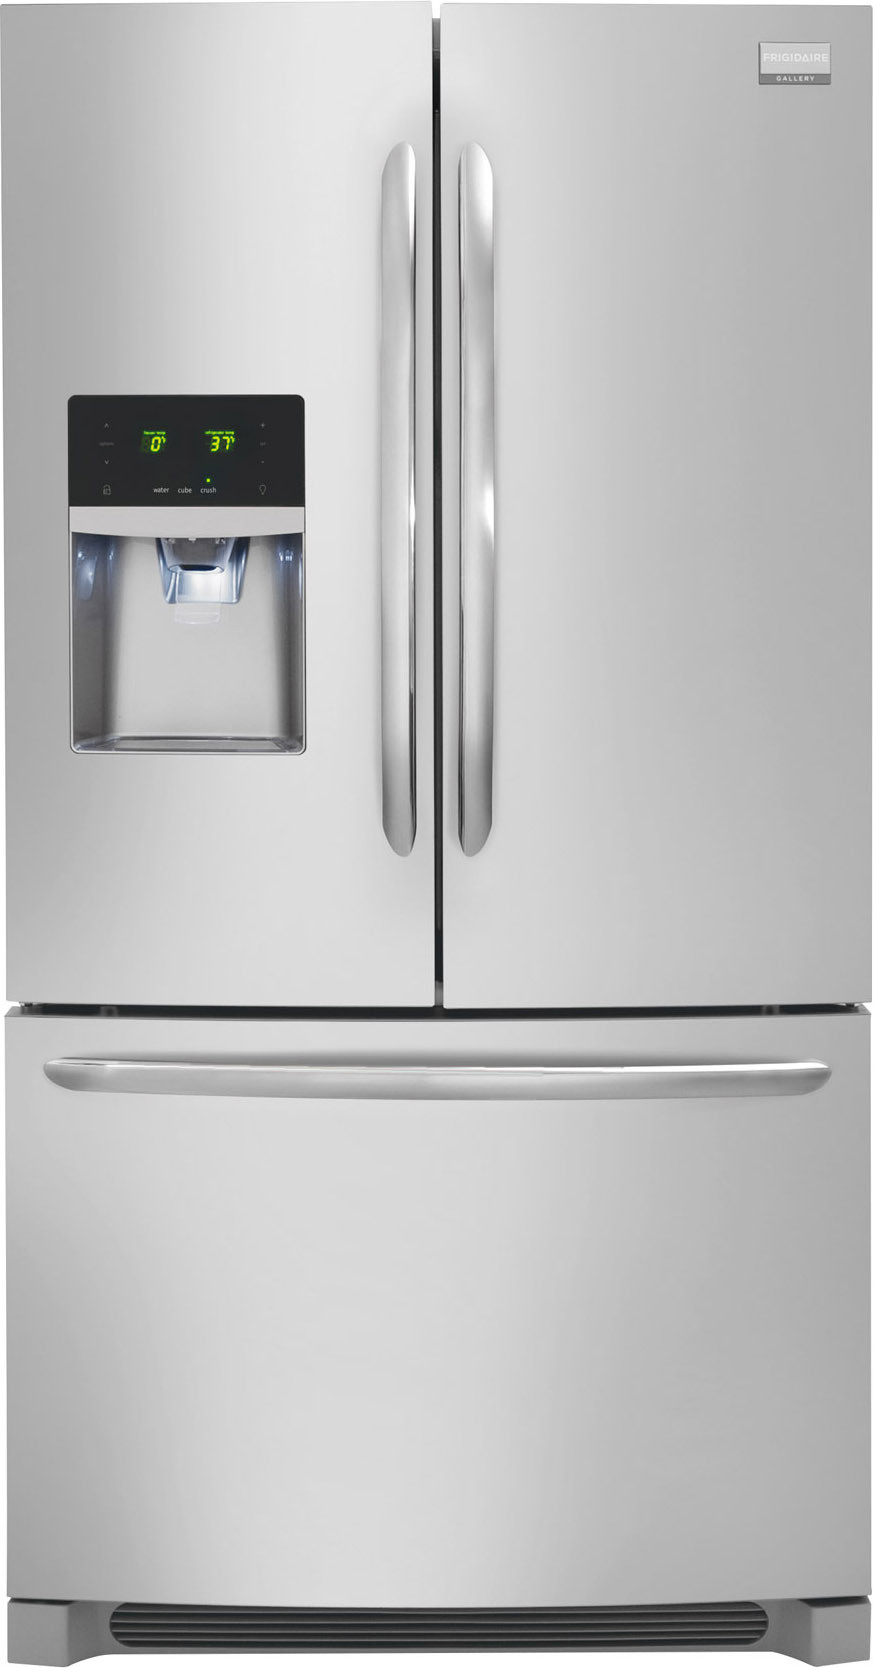 Frigidaire FGHB2866PF 36 Inch French Door Refrigerator with Cool Zone  Drawer, Quick Freeze, Energy Star, 27.8 cu. ft Capacity, Adjustable  SpillSafe Shelves, ...